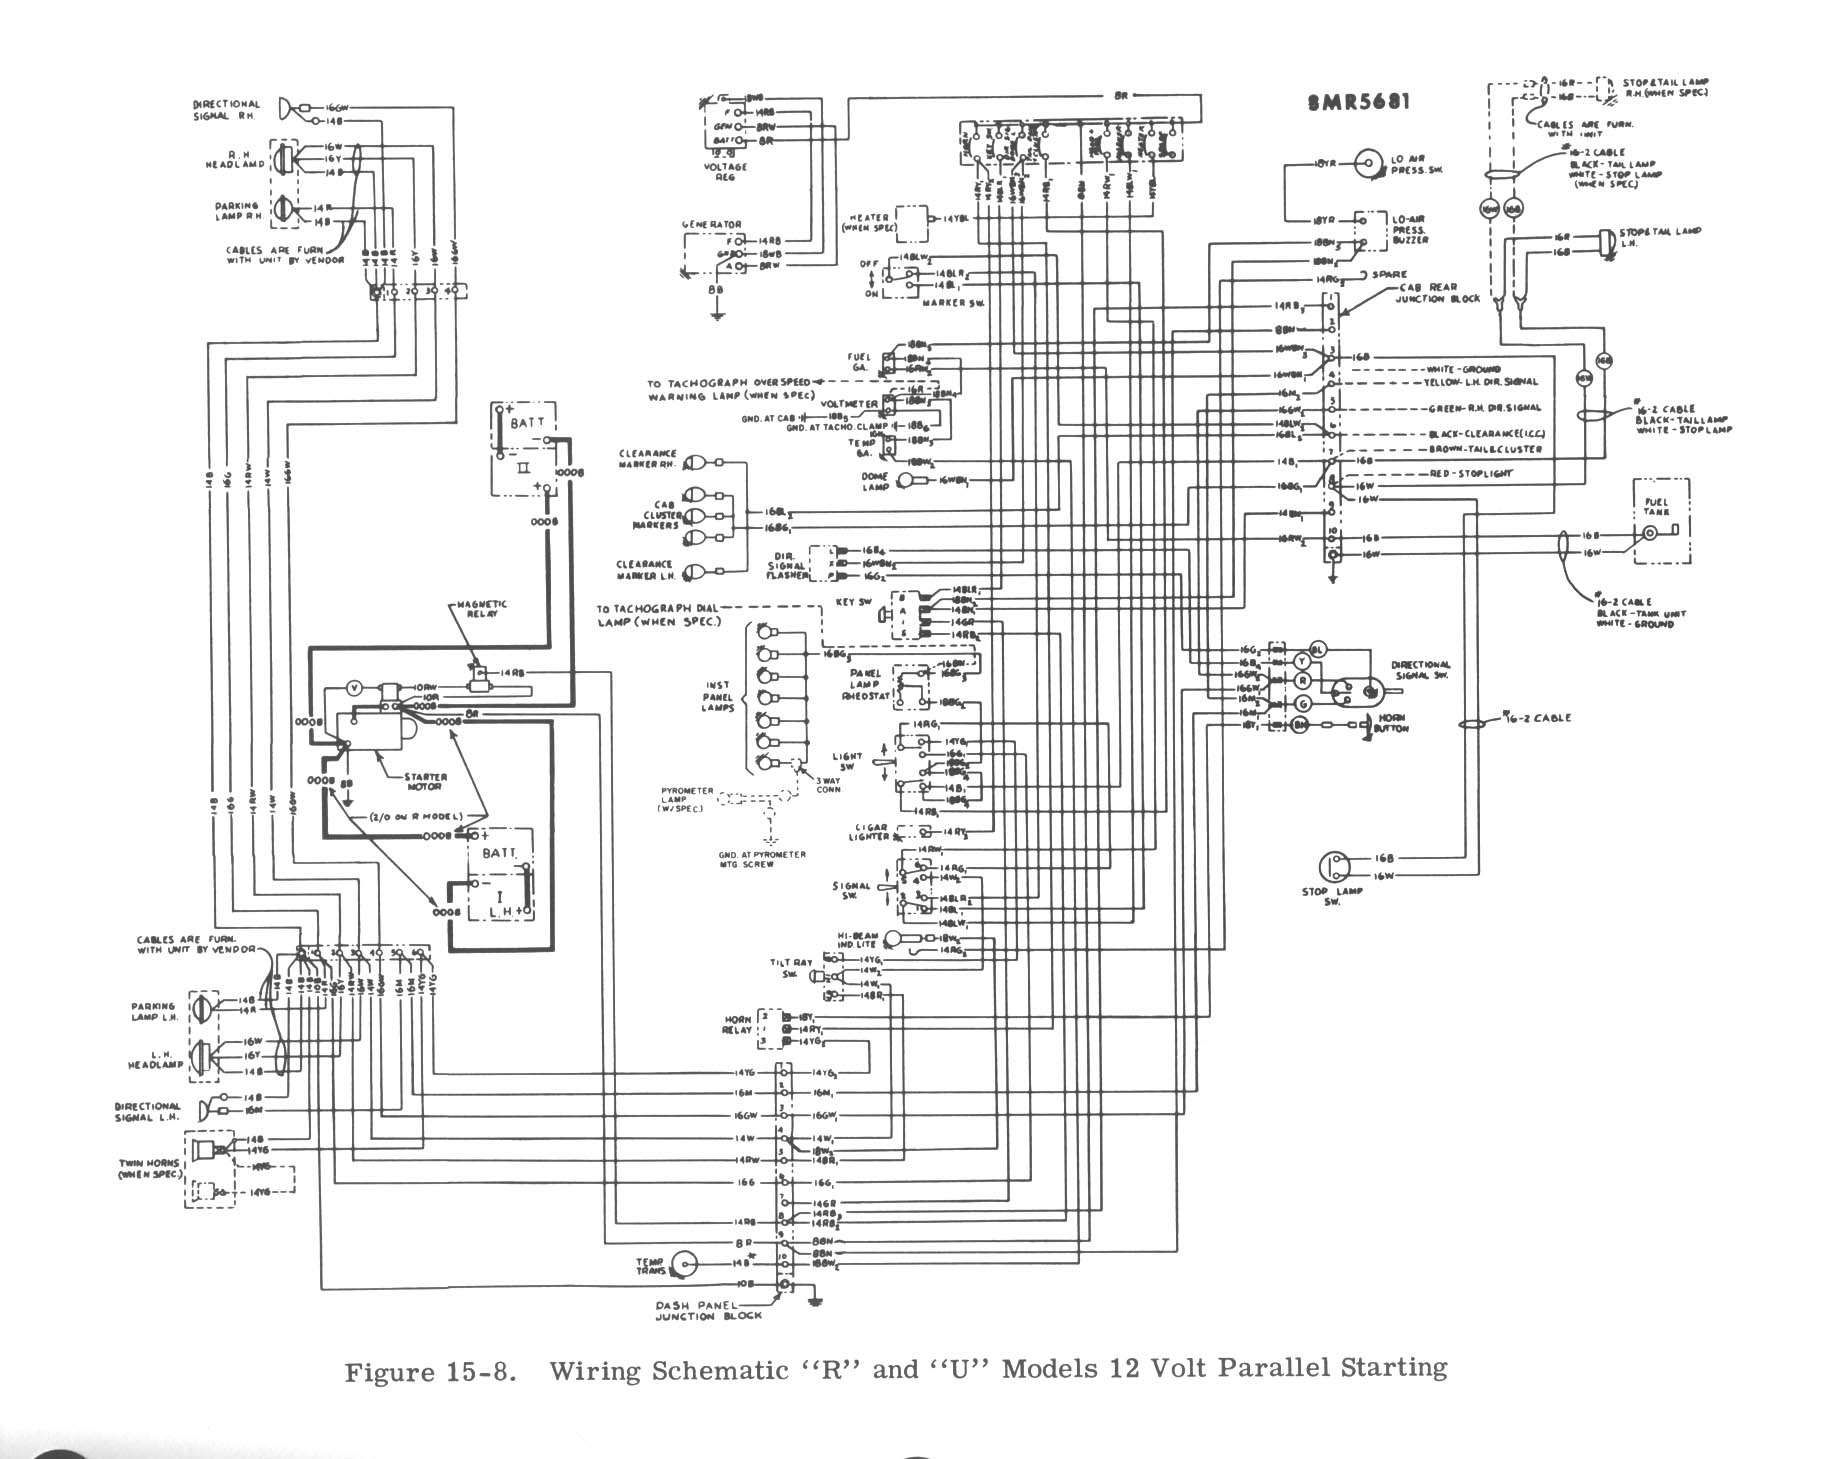 mack wiring schematics wiring diagram general home mack truck electrical schematics mack truck wiring schematic [ 1828 x 1459 Pixel ]